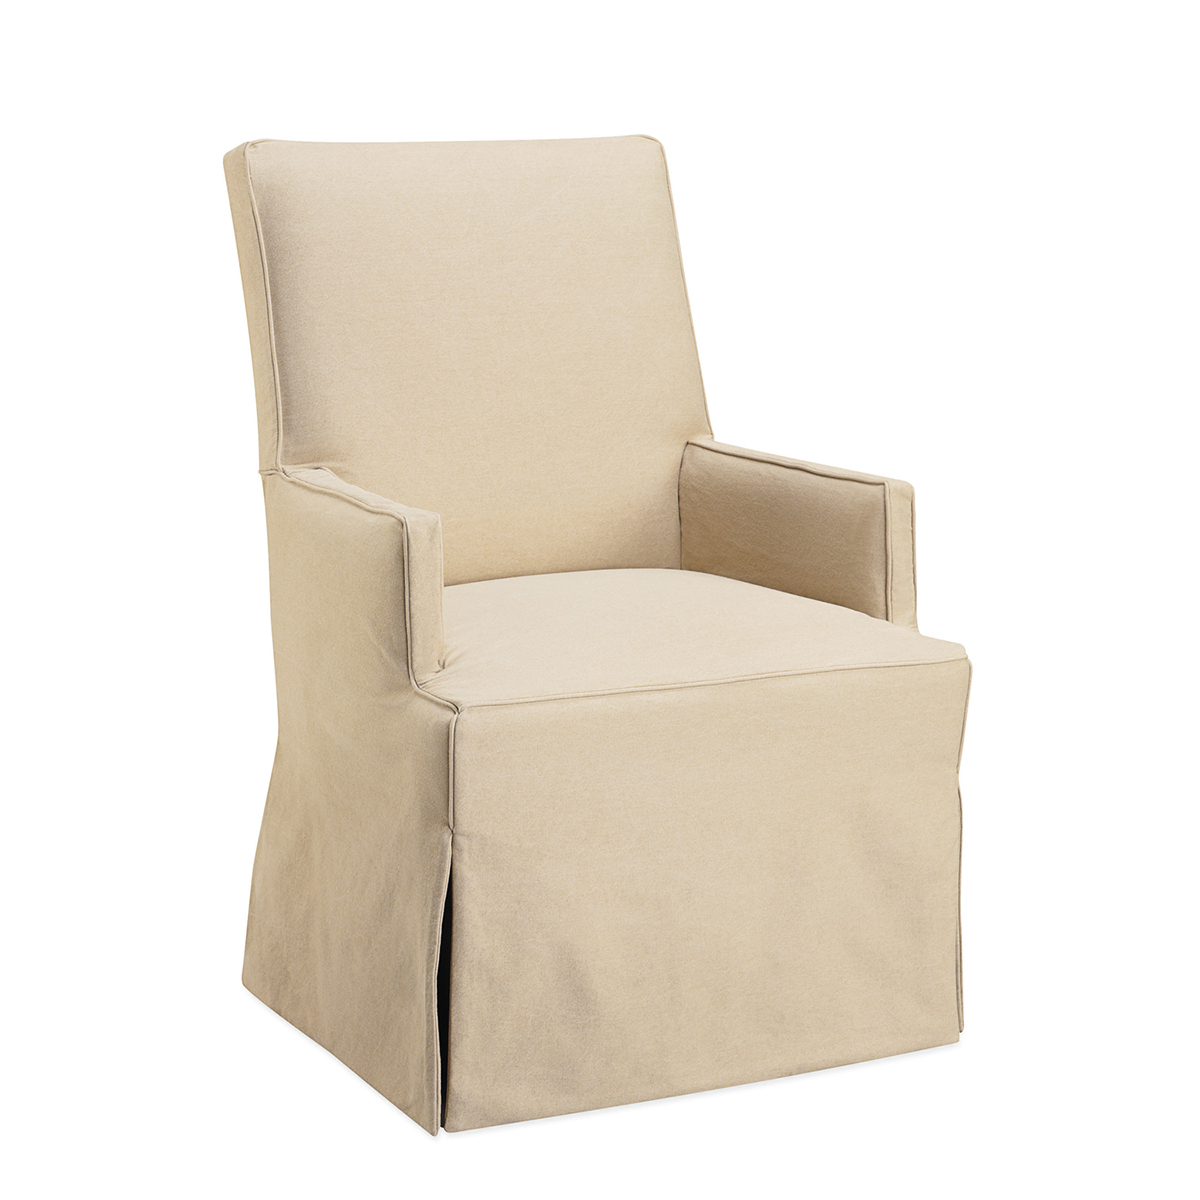 Slipcovered_Host_chair_C5567-41_Lee_Industries.jpg